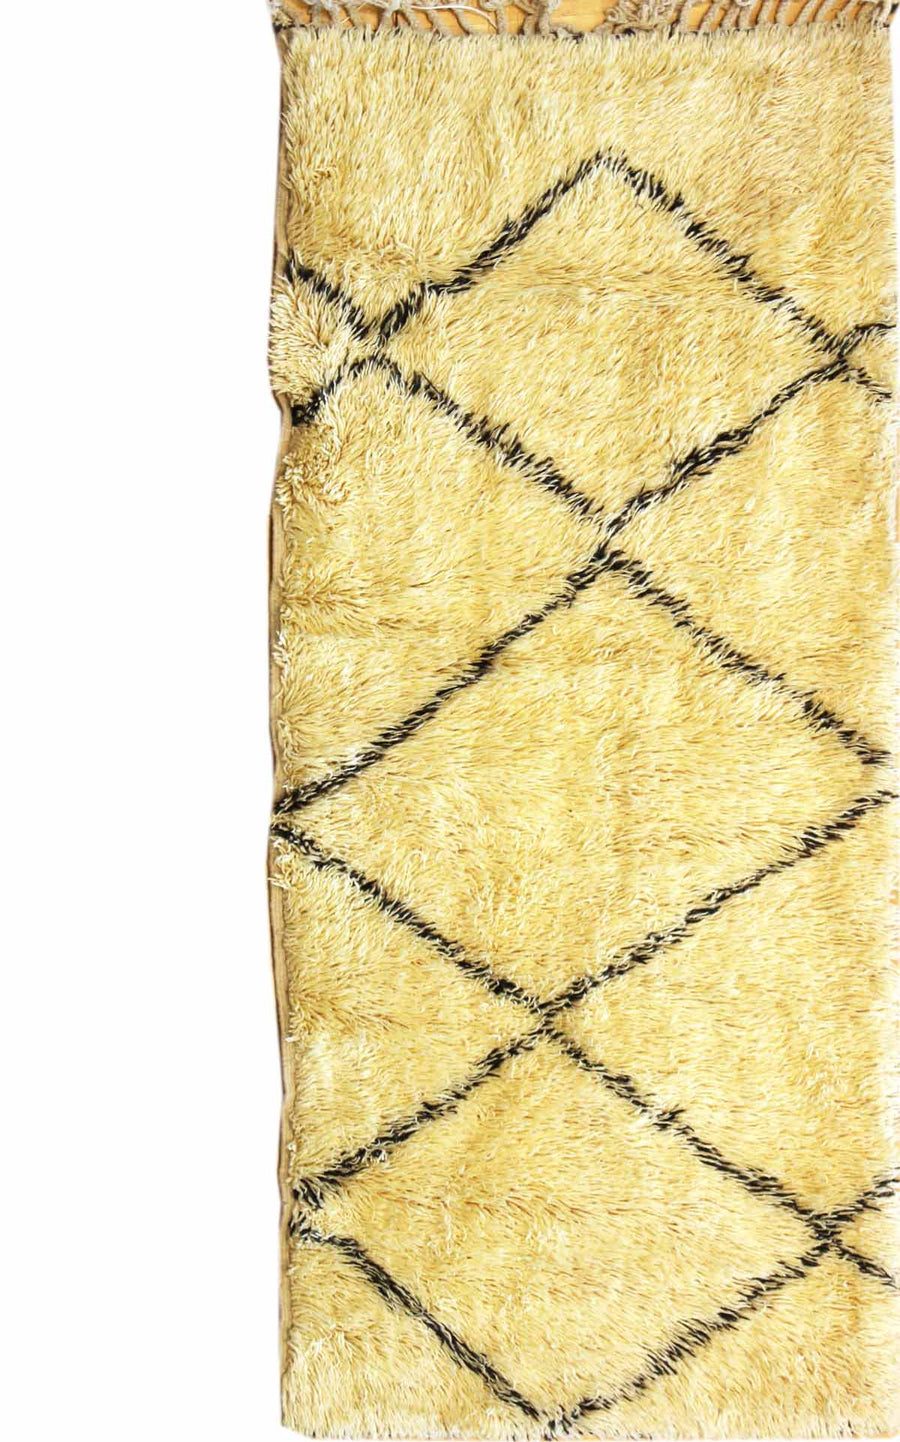 BENI OURAINE HANDKNOTTED RUG, J38338